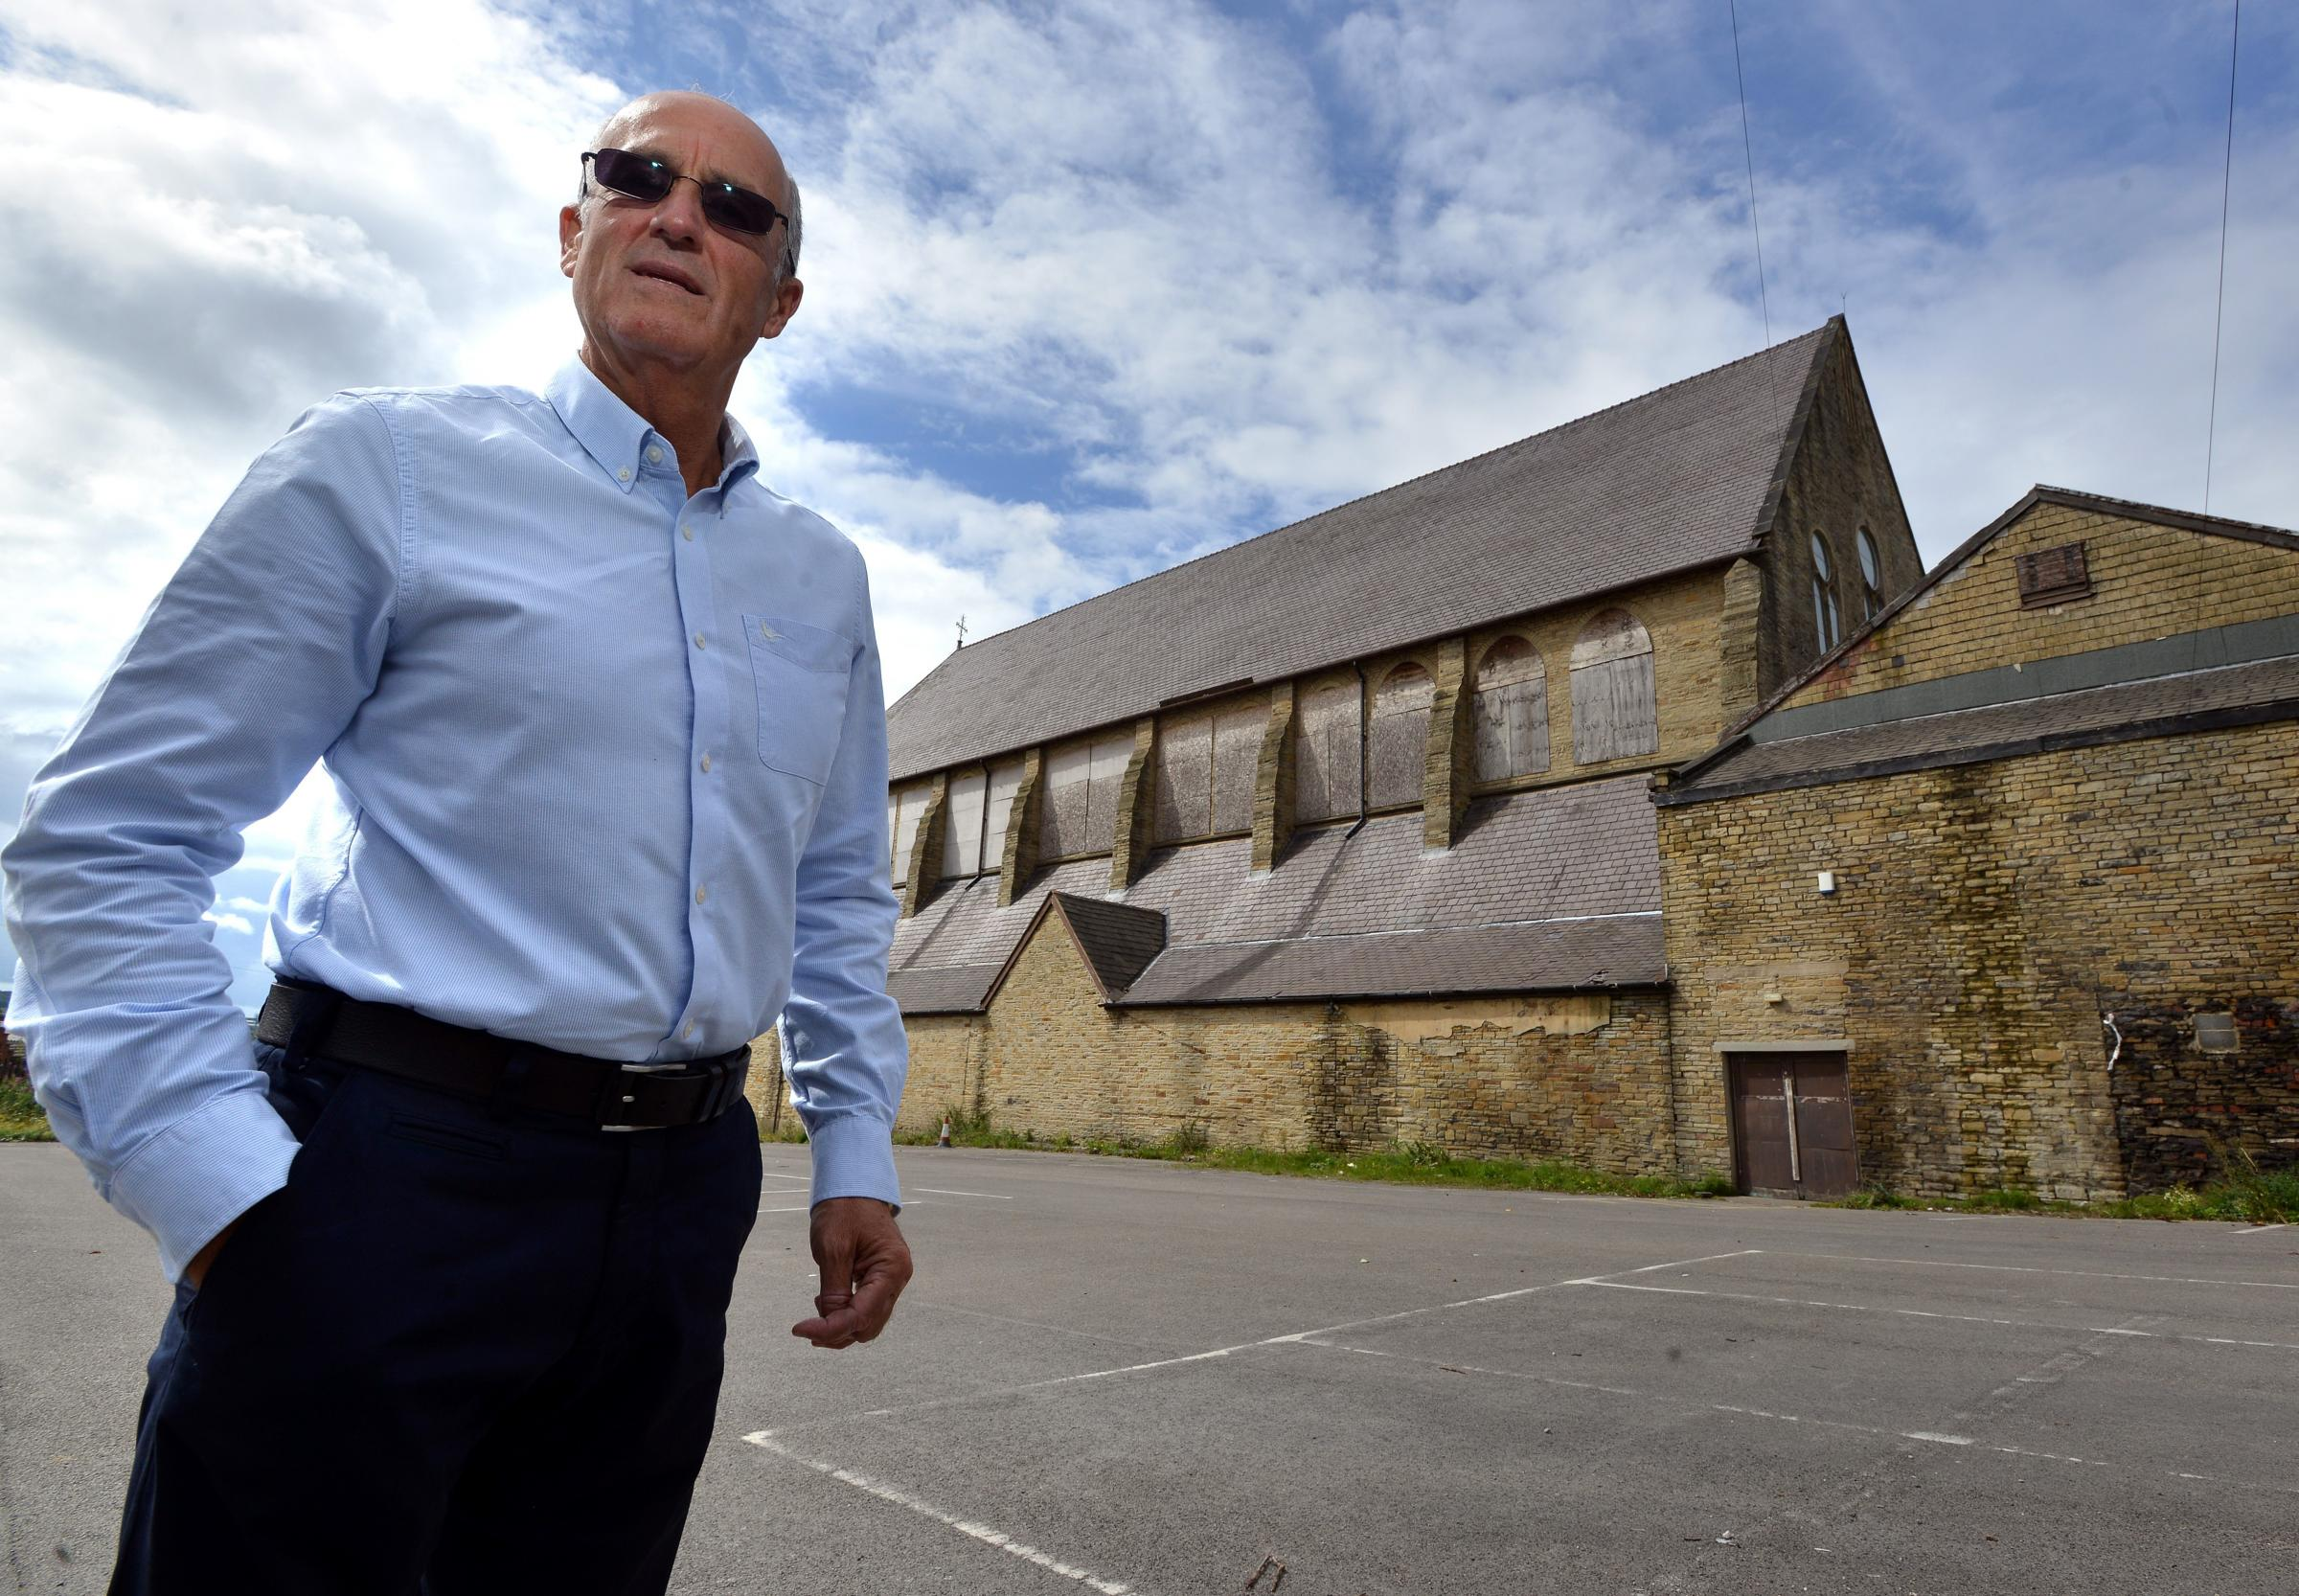 VIDEO: Sale of disused church leaves charities looking for new homes